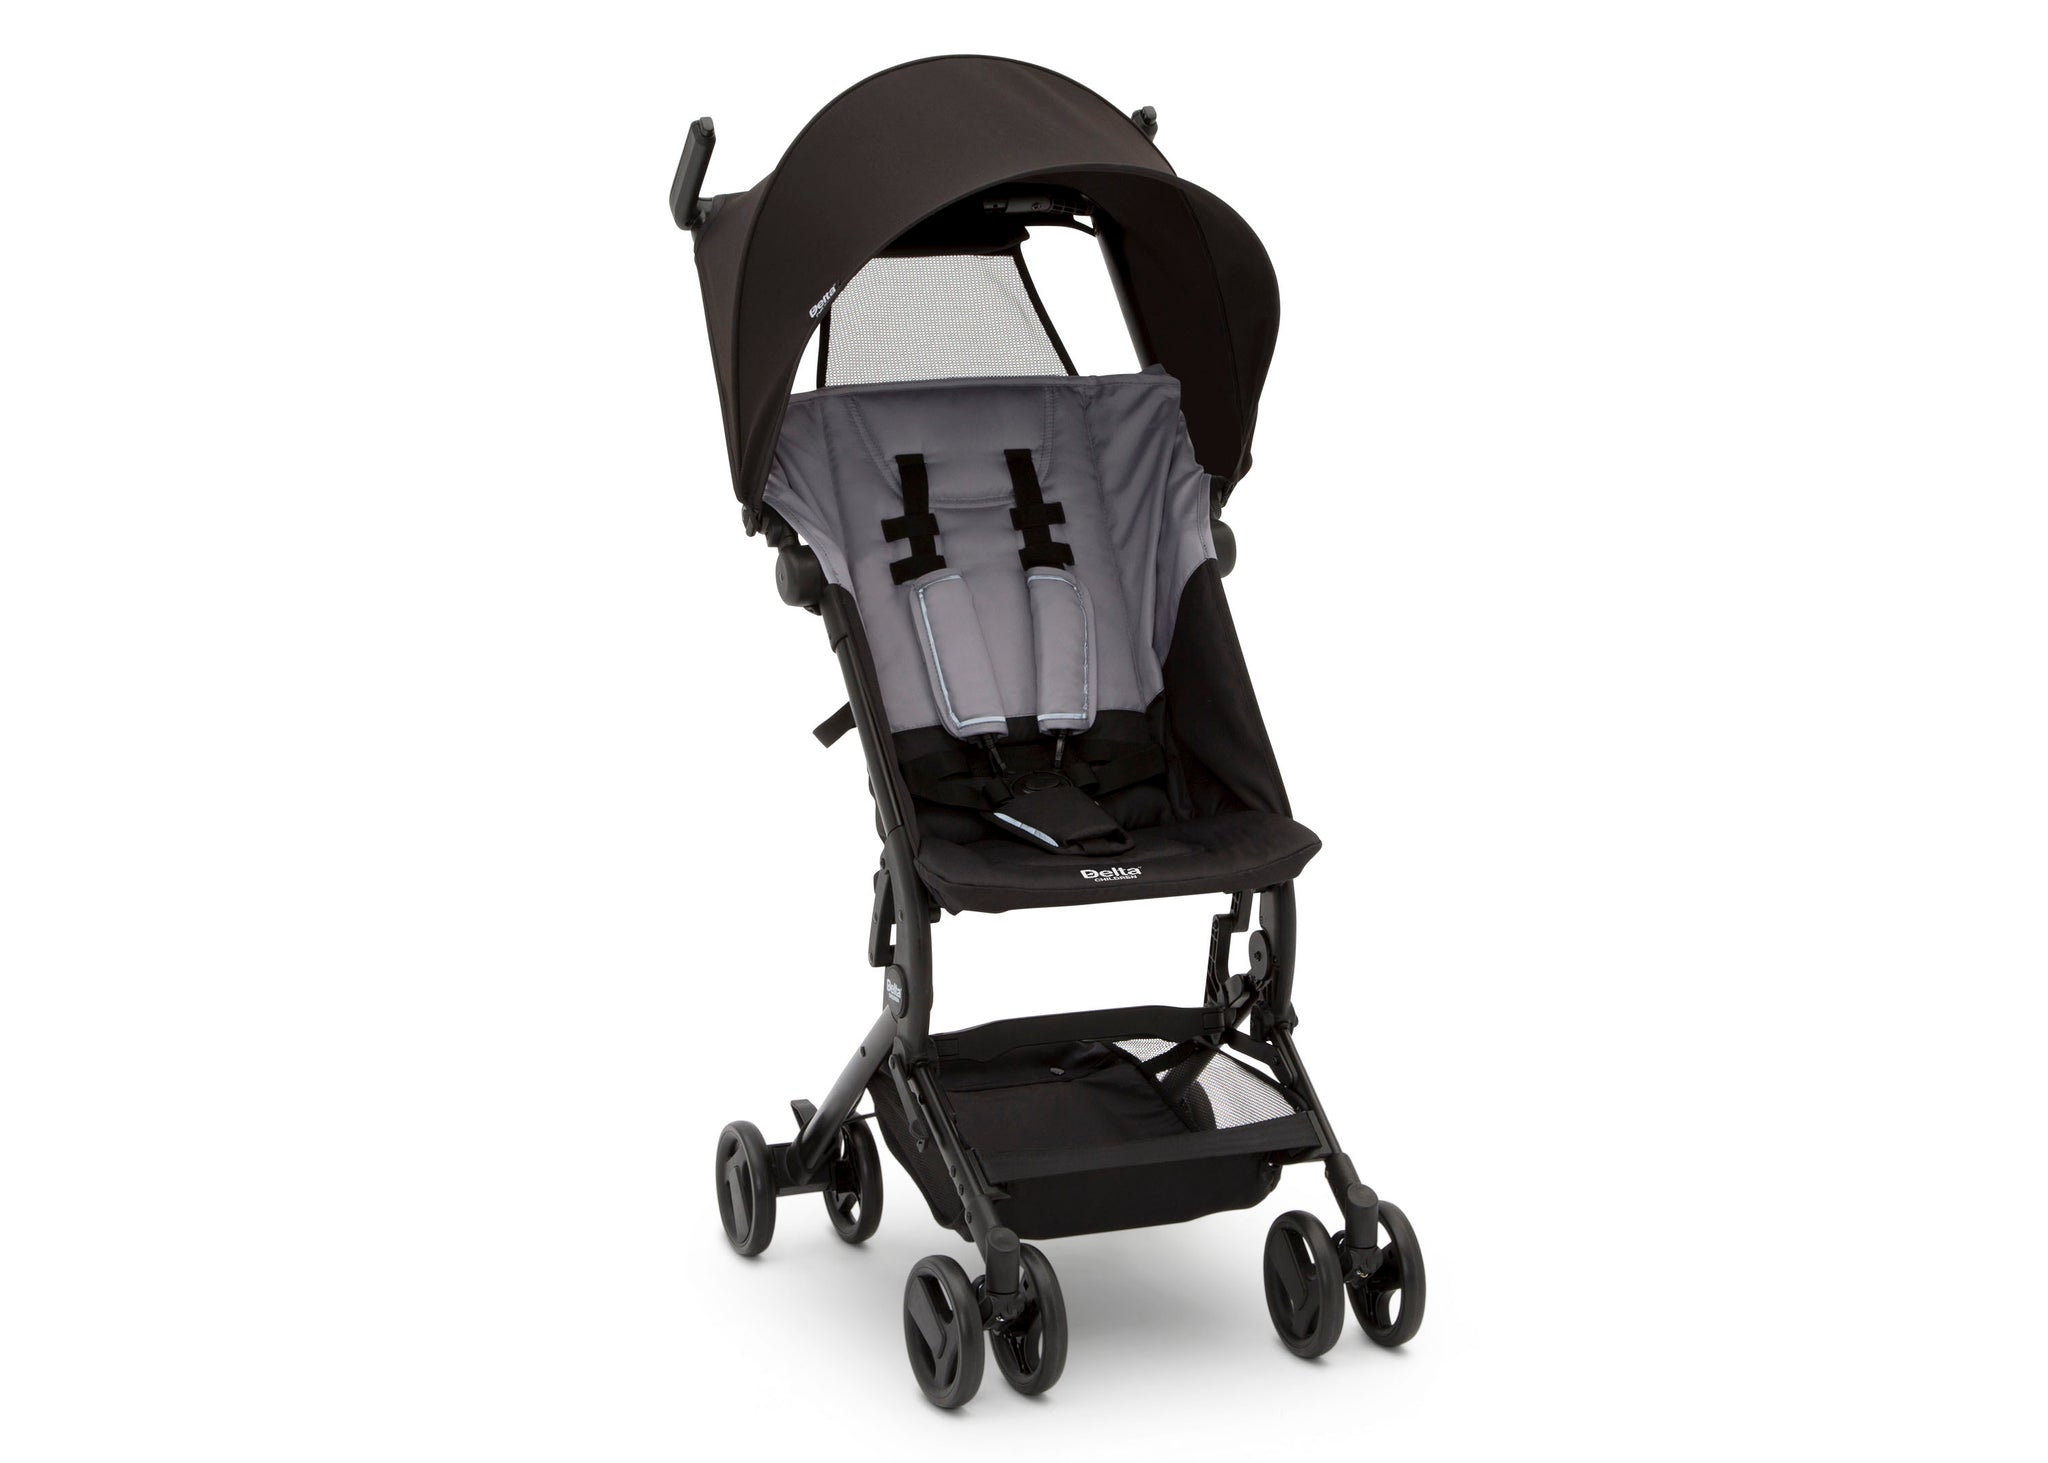 Clutch Plus Travel Stroller with Recline